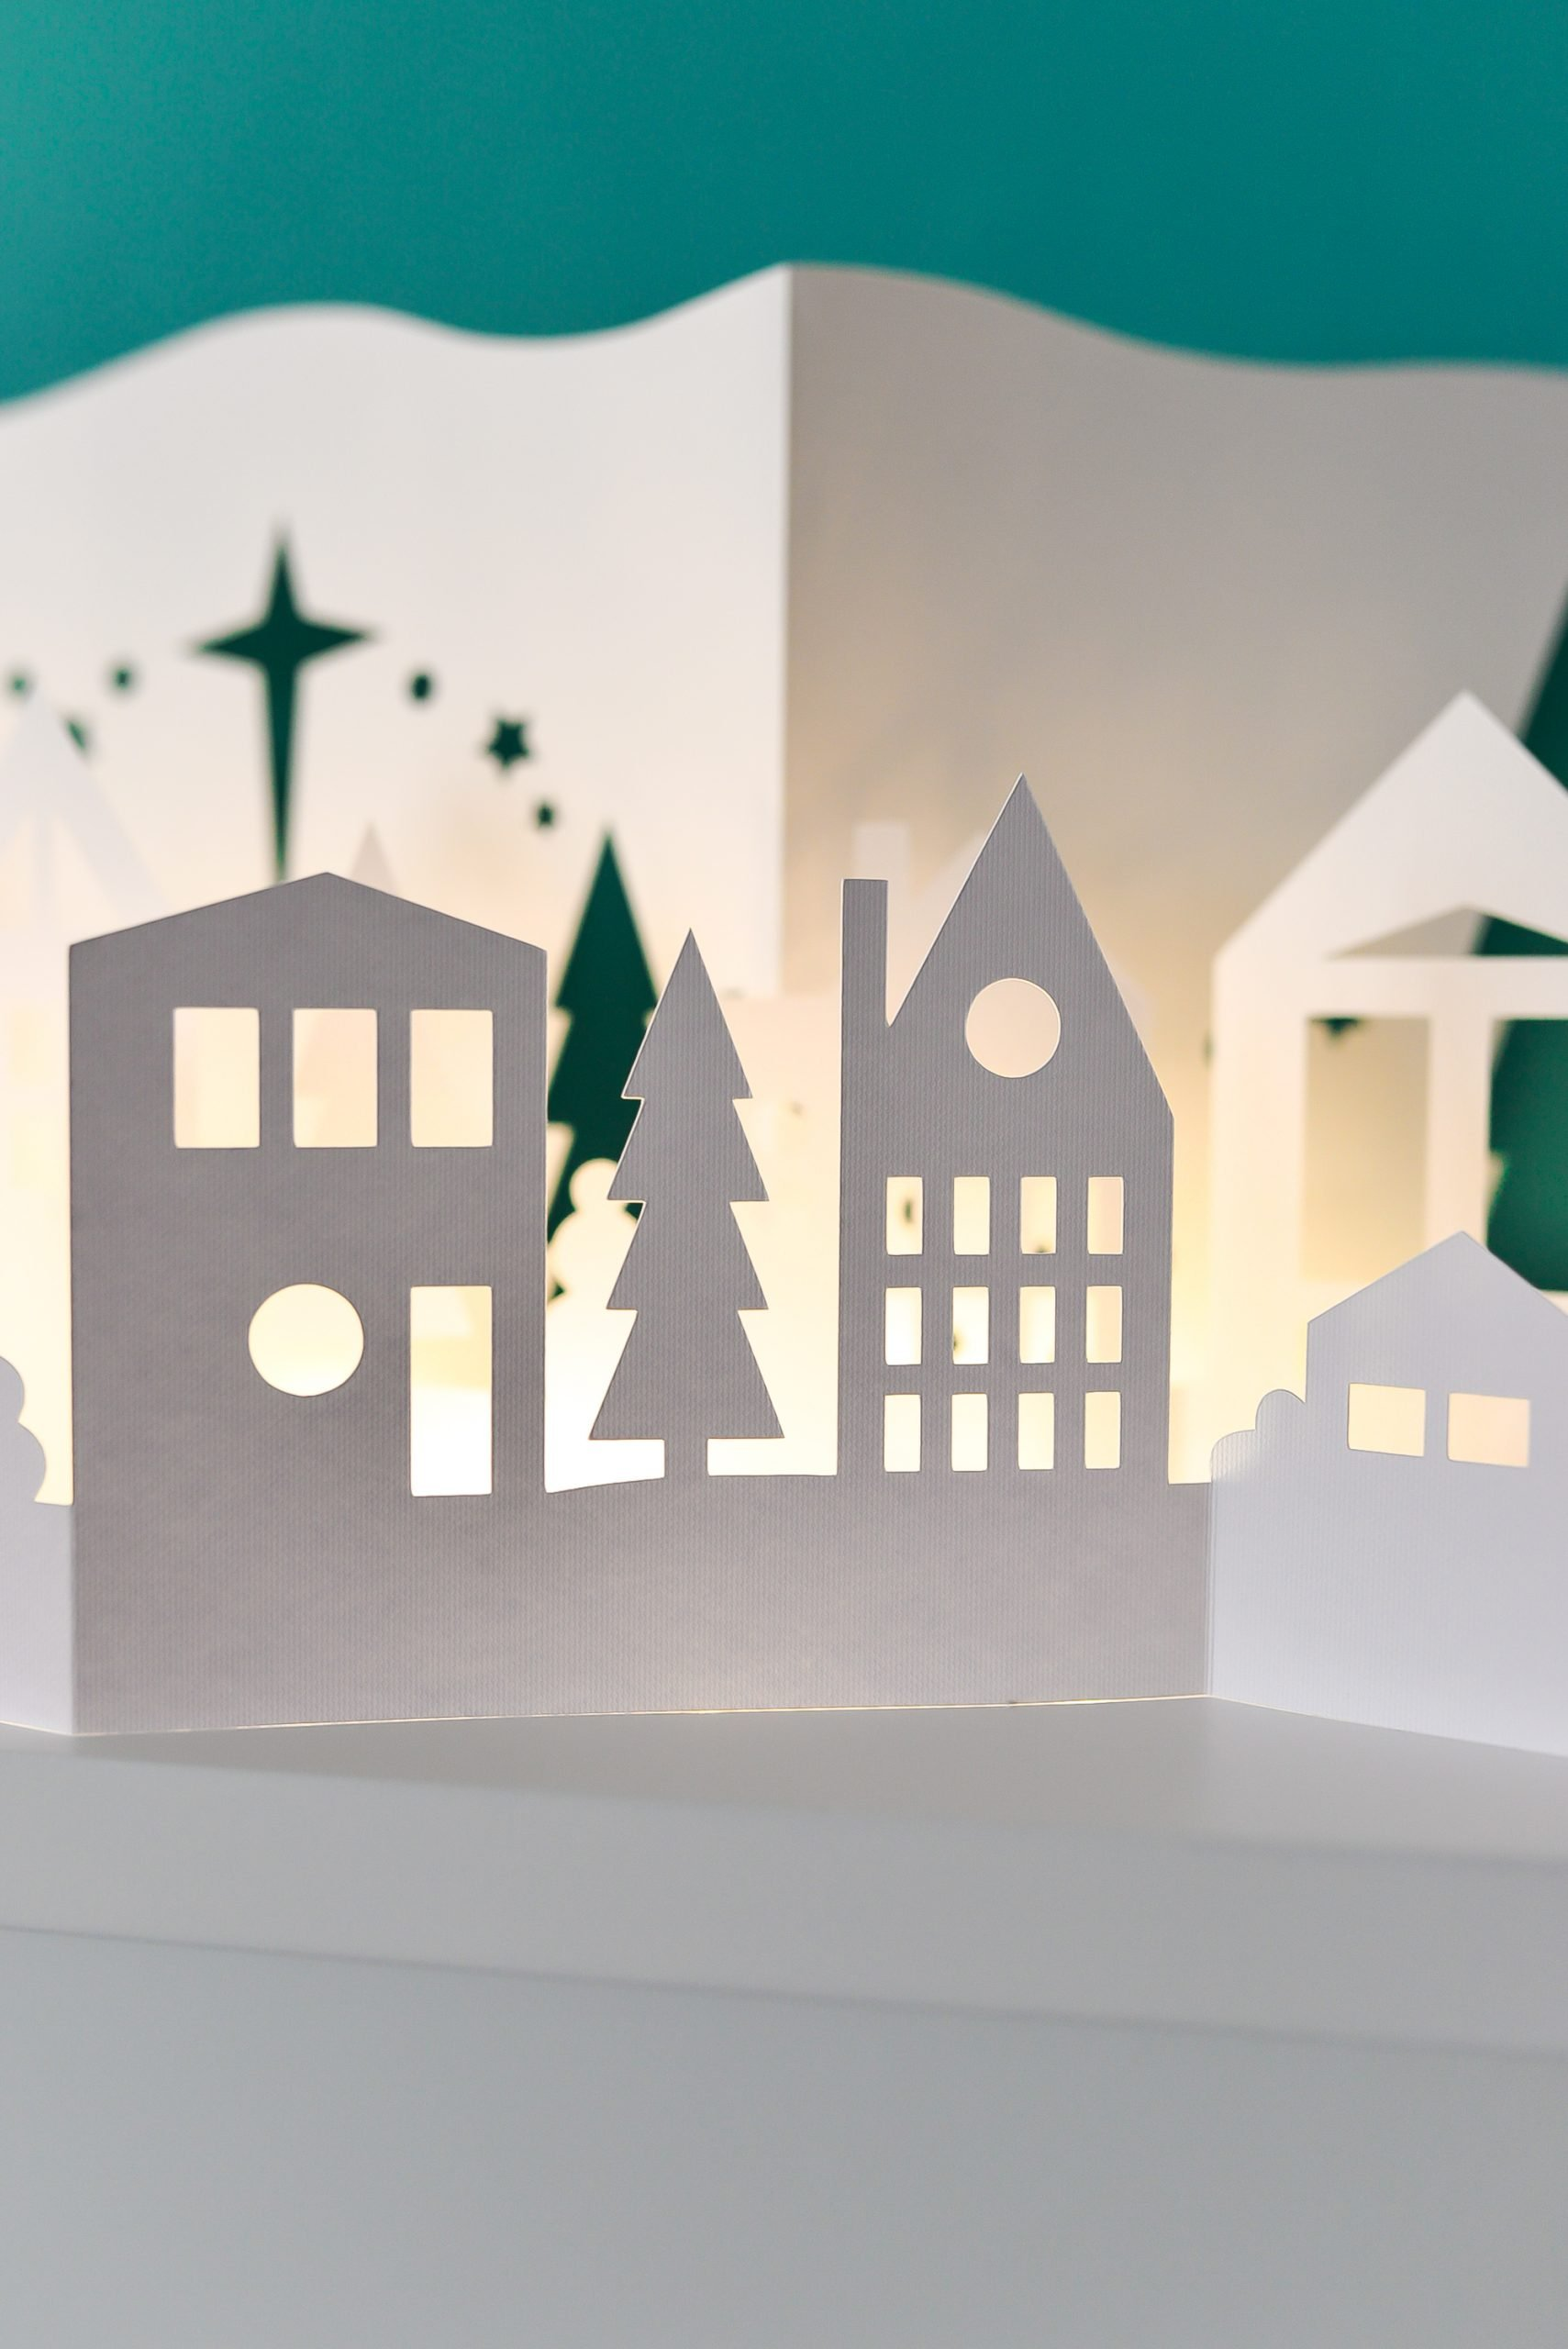 Papercut Christmas Village illuminated with fairy lights